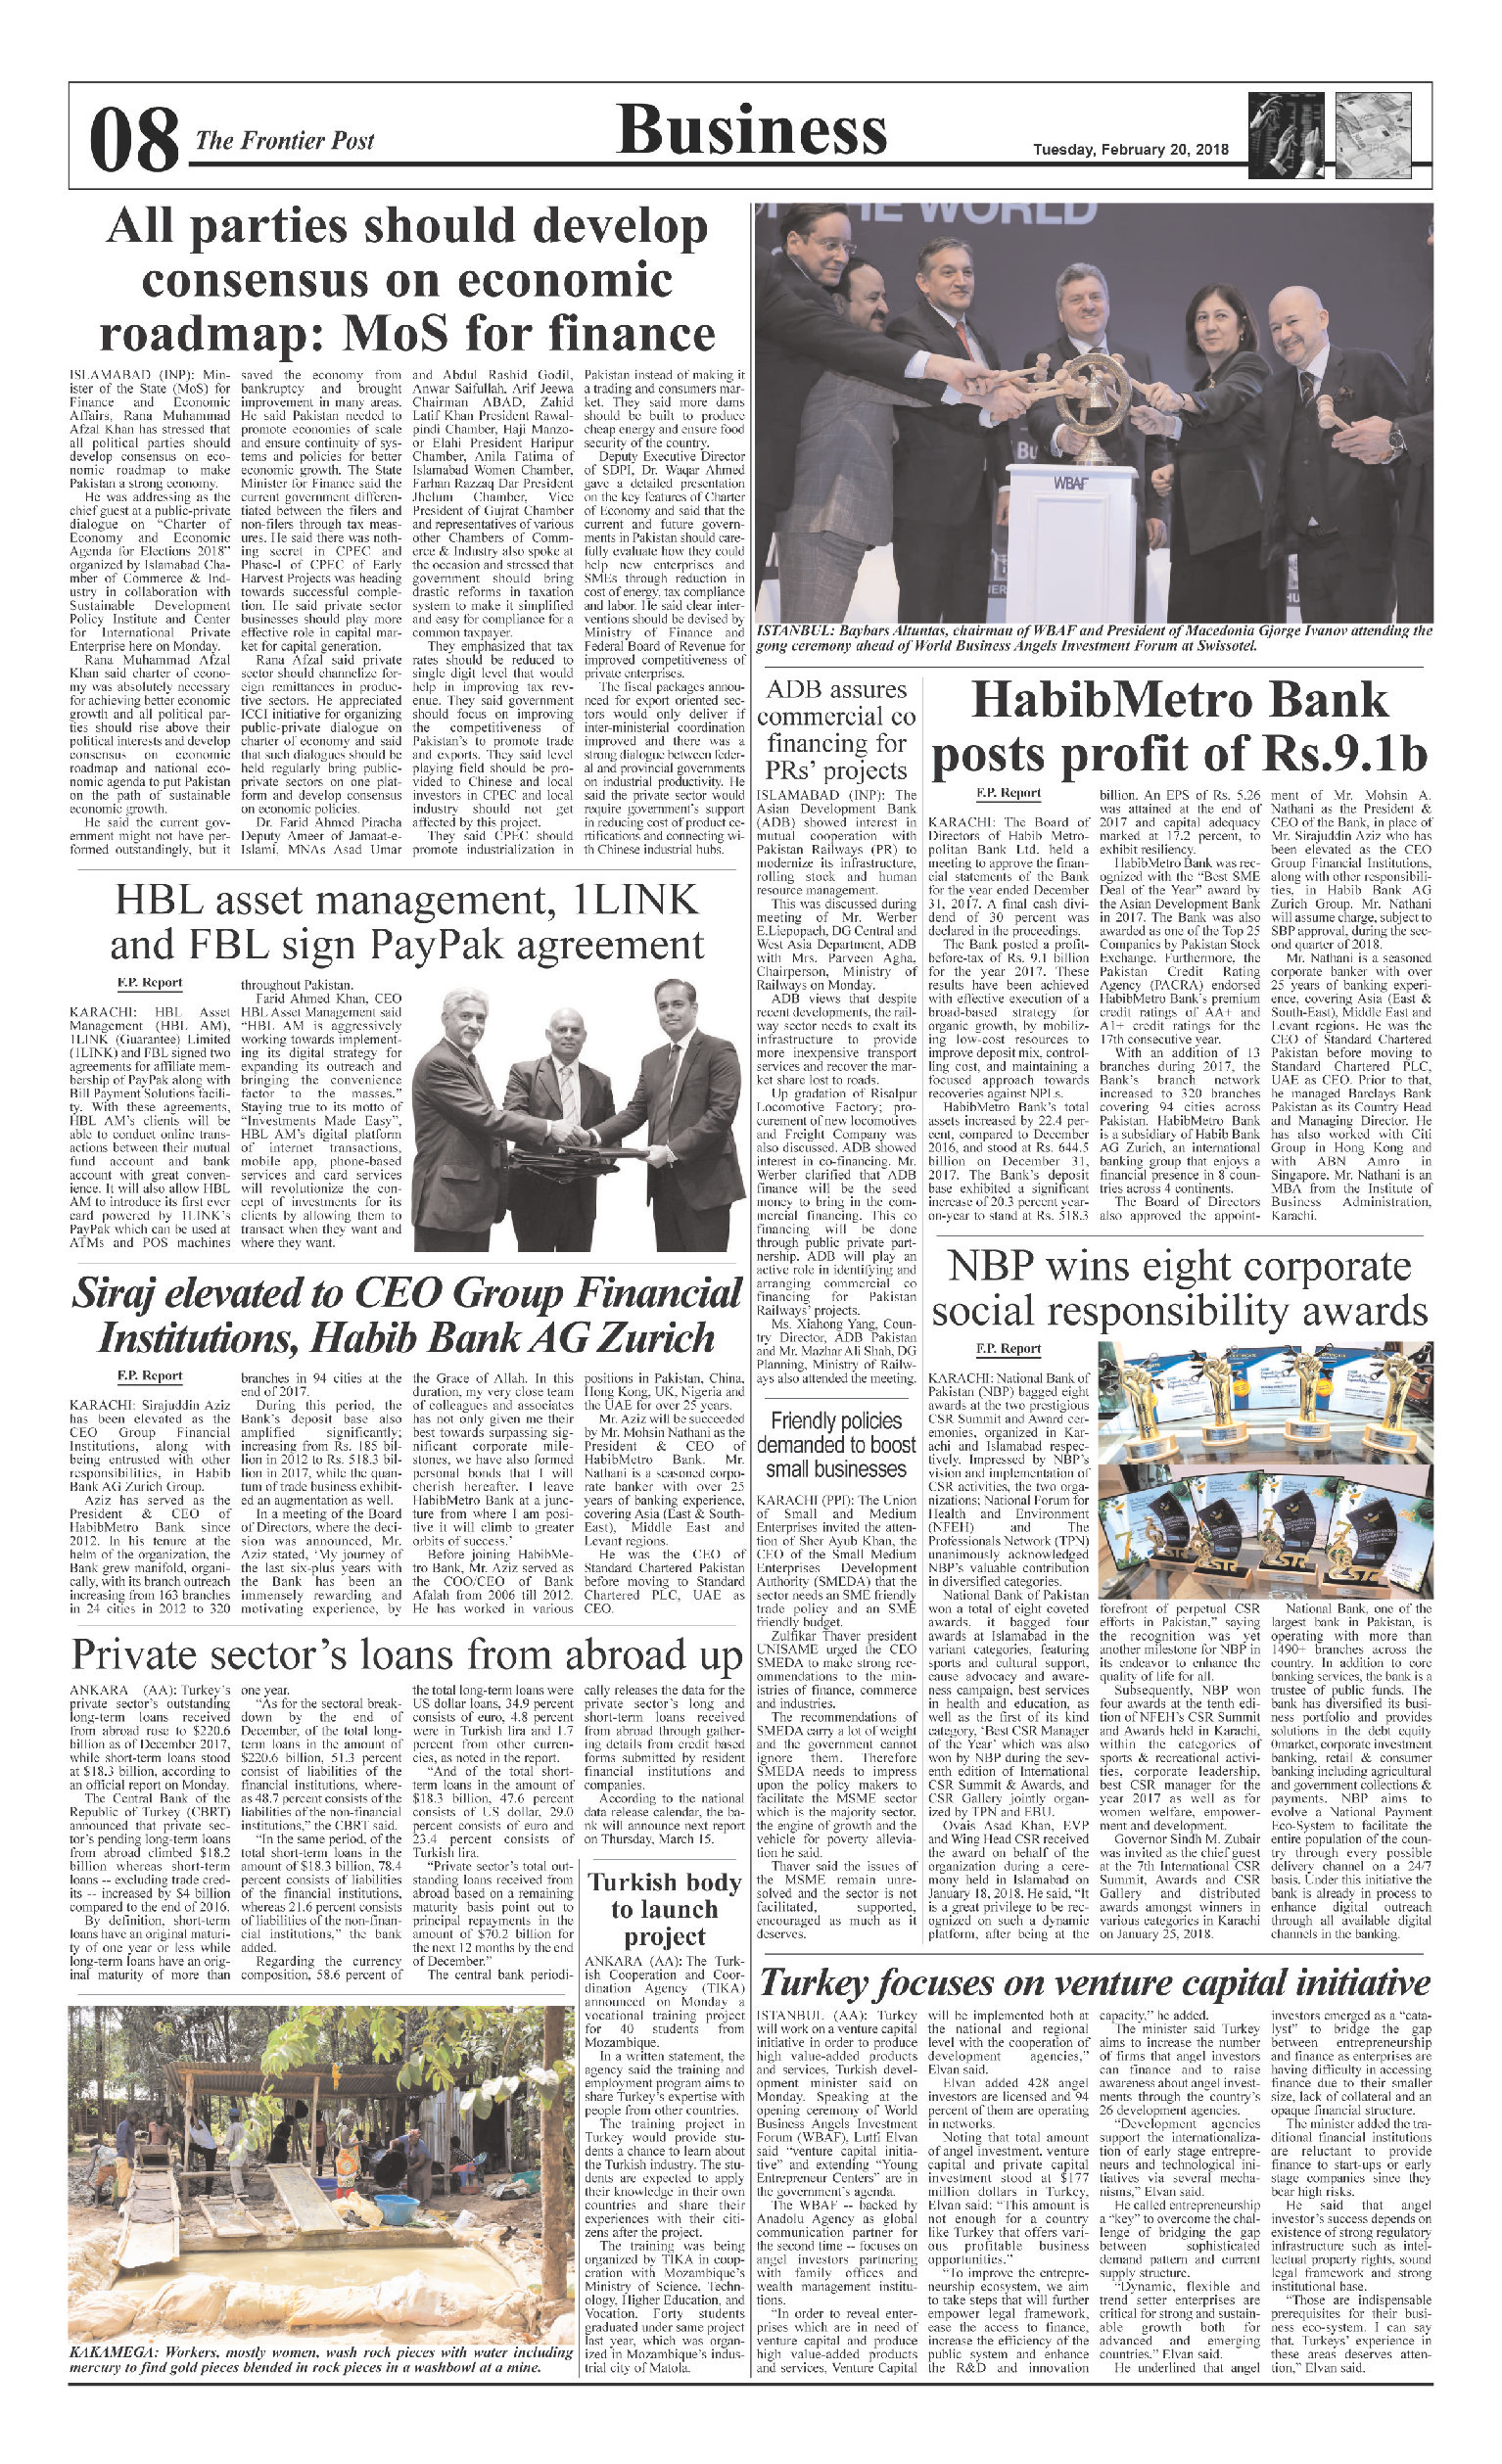 Business Page 20-02